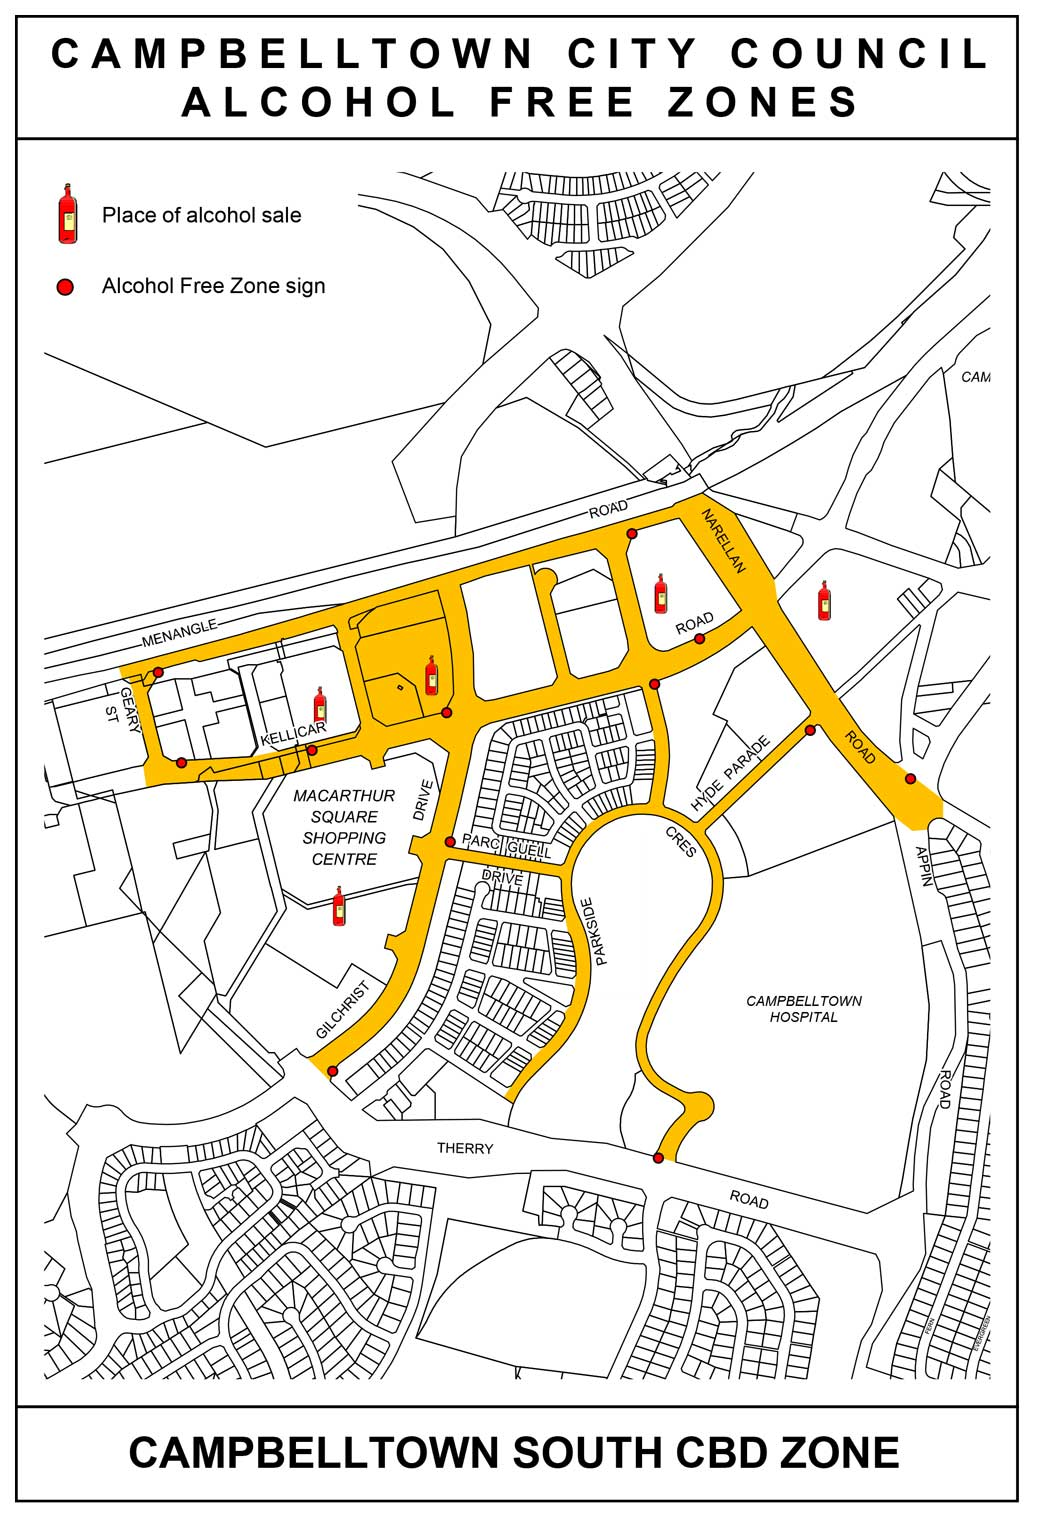 Map of Campbelltown South Alcohol Free Zone